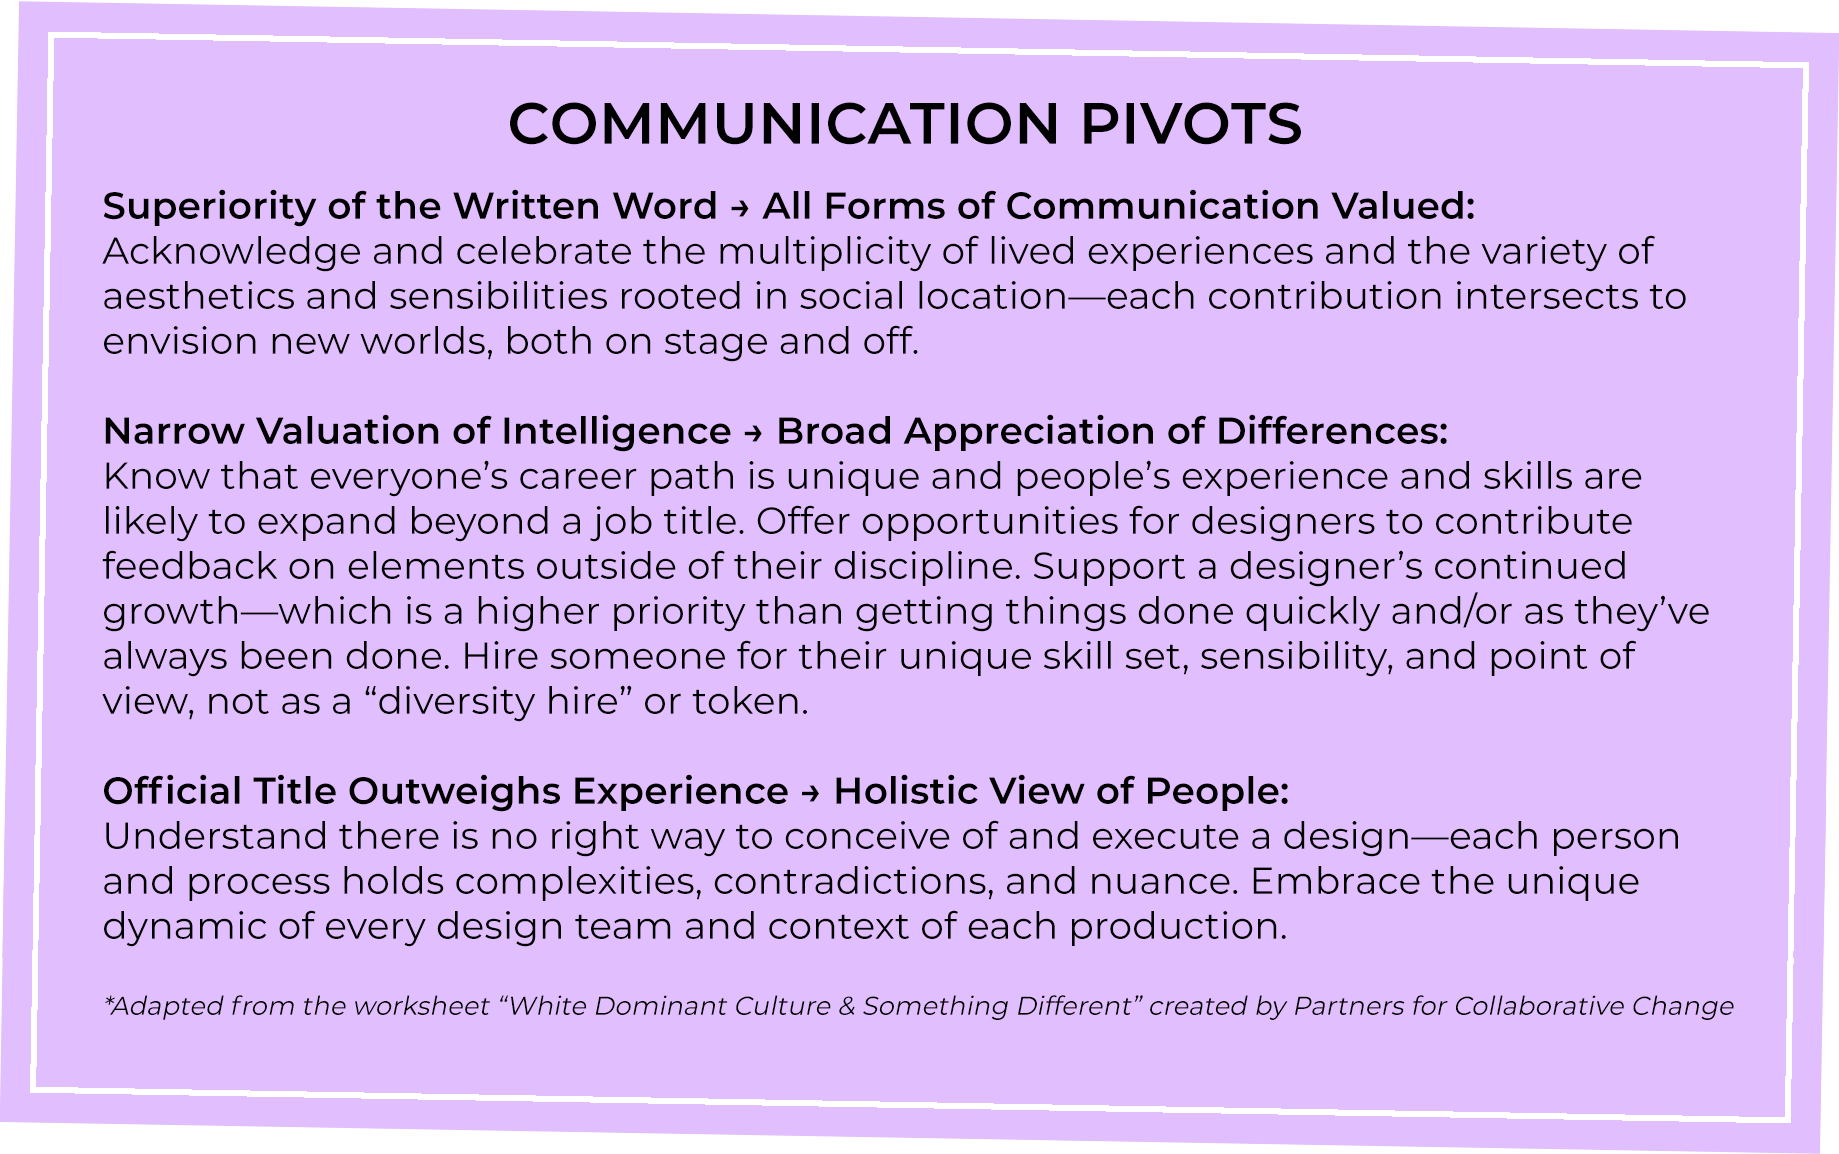 Communication Pivots Superiority of the written word > all forms of Communication Valued Narrow Valuation of Intelligence > Broad Appreciation of Differences Official Title Outweighs Experience > Holistic View of People